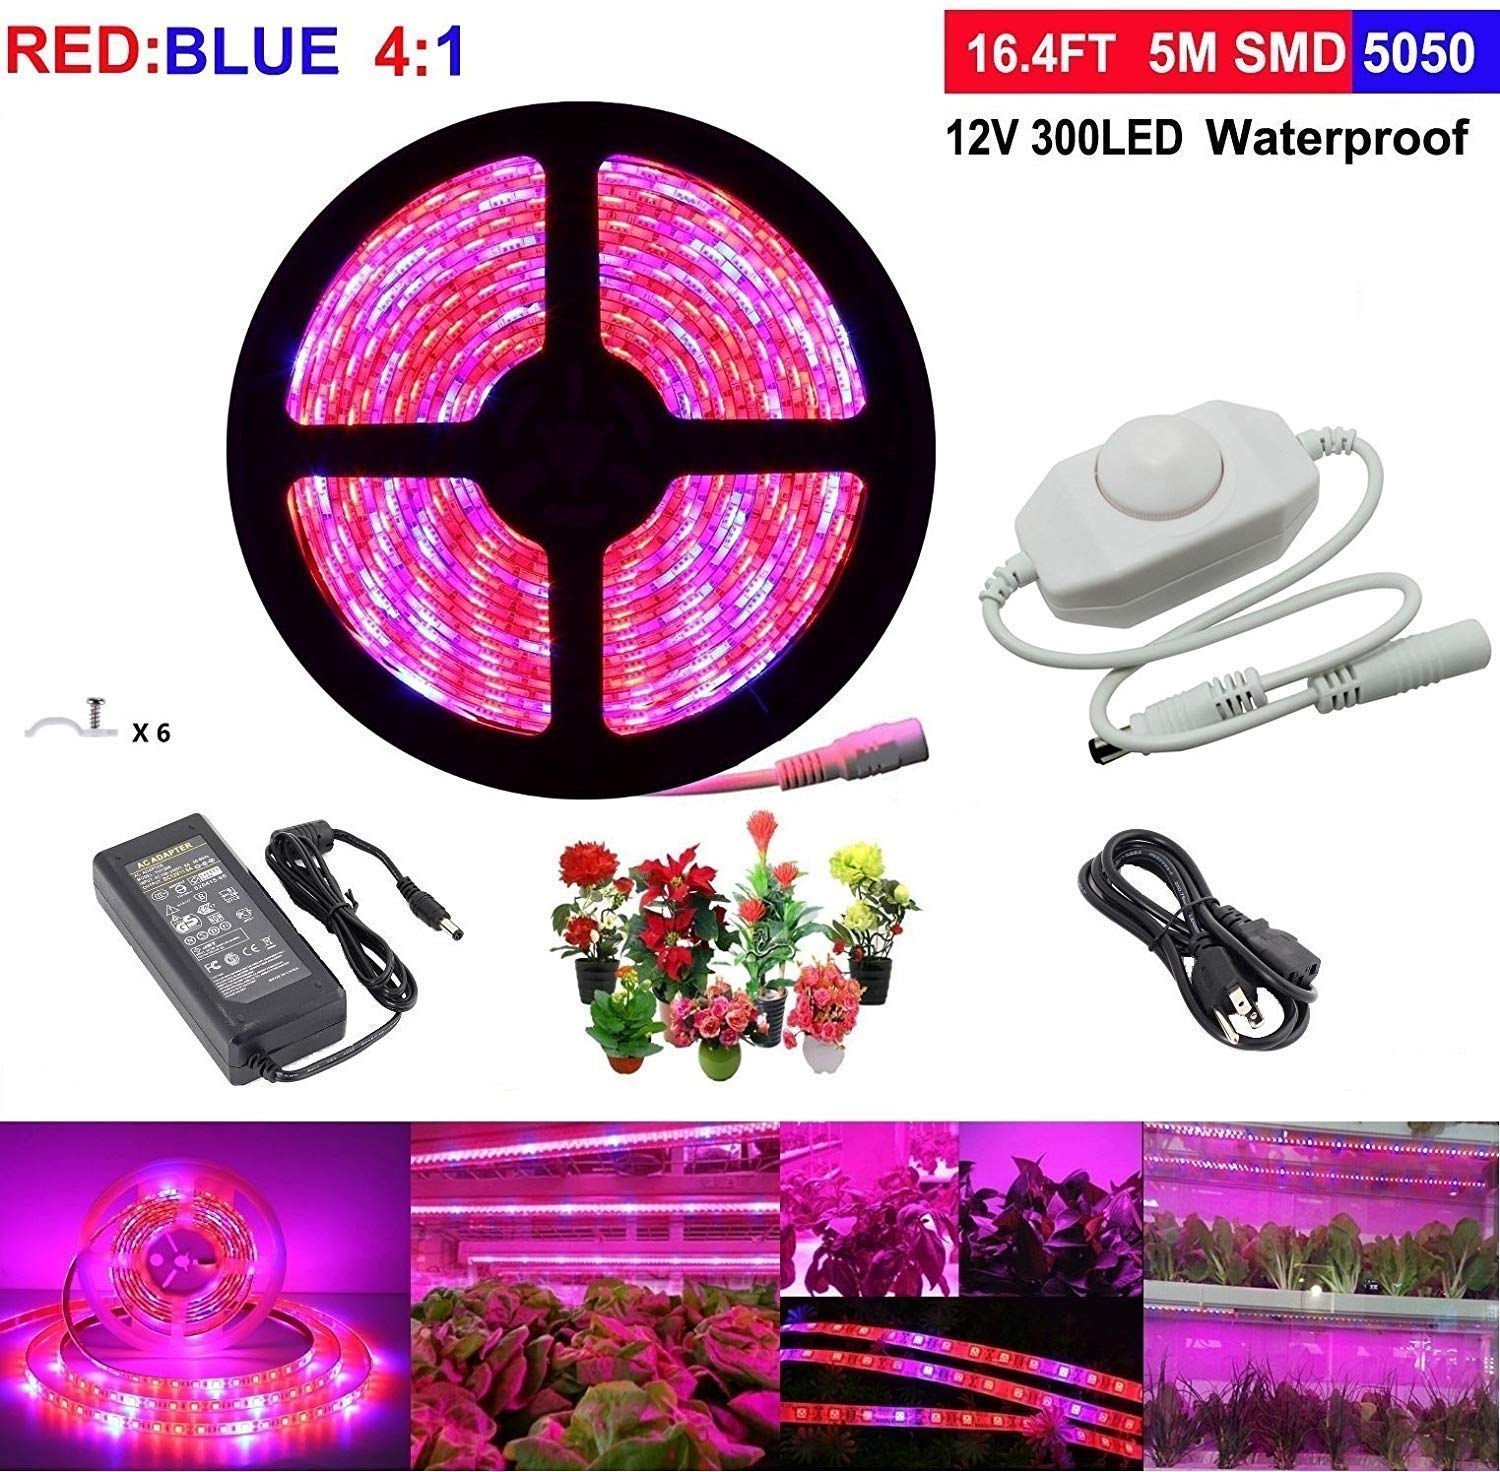 LED Grow Light,Topled Light® Plant Light Strip with Rotate Dimmer,Full Spectrum SMD 5050 Flexible Soft Red Blue 4:1 Rope Light for Home Greenhouse Hydroponic Pant Garden Flowers Veg Grow Light (5M)